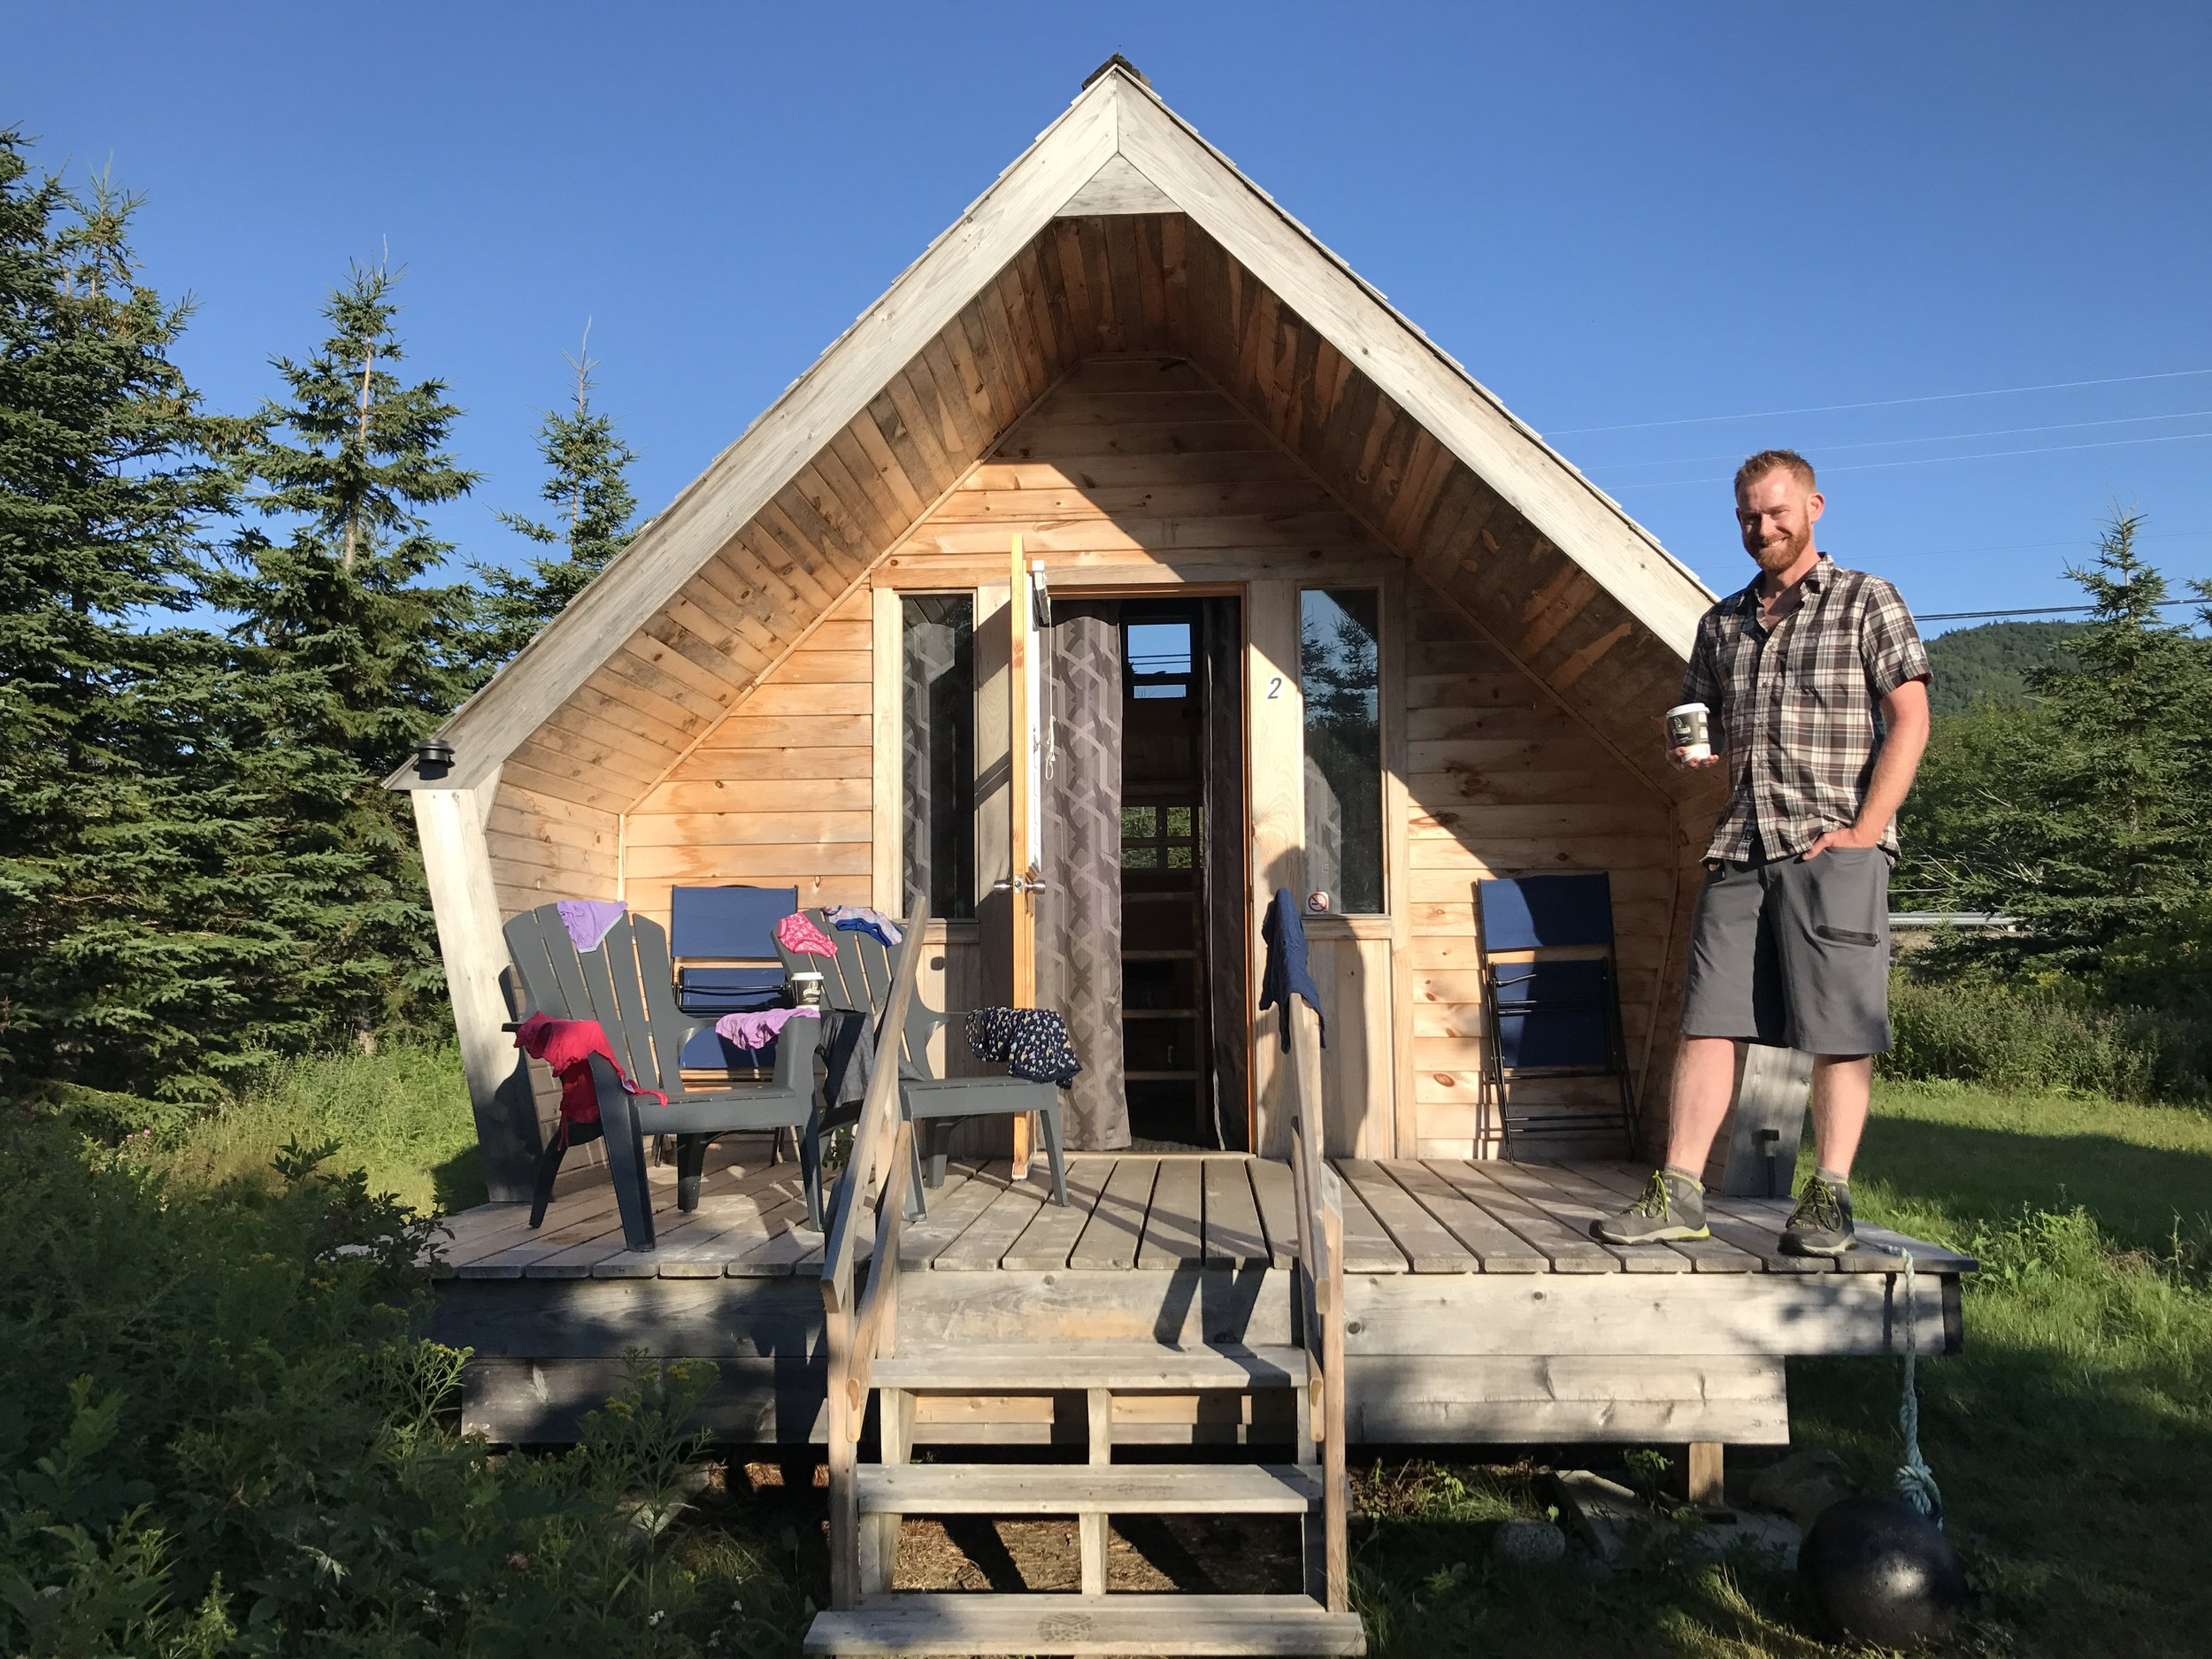 Our glamping cabin at Dancing Moose - Matt makes the cabin look tiny.